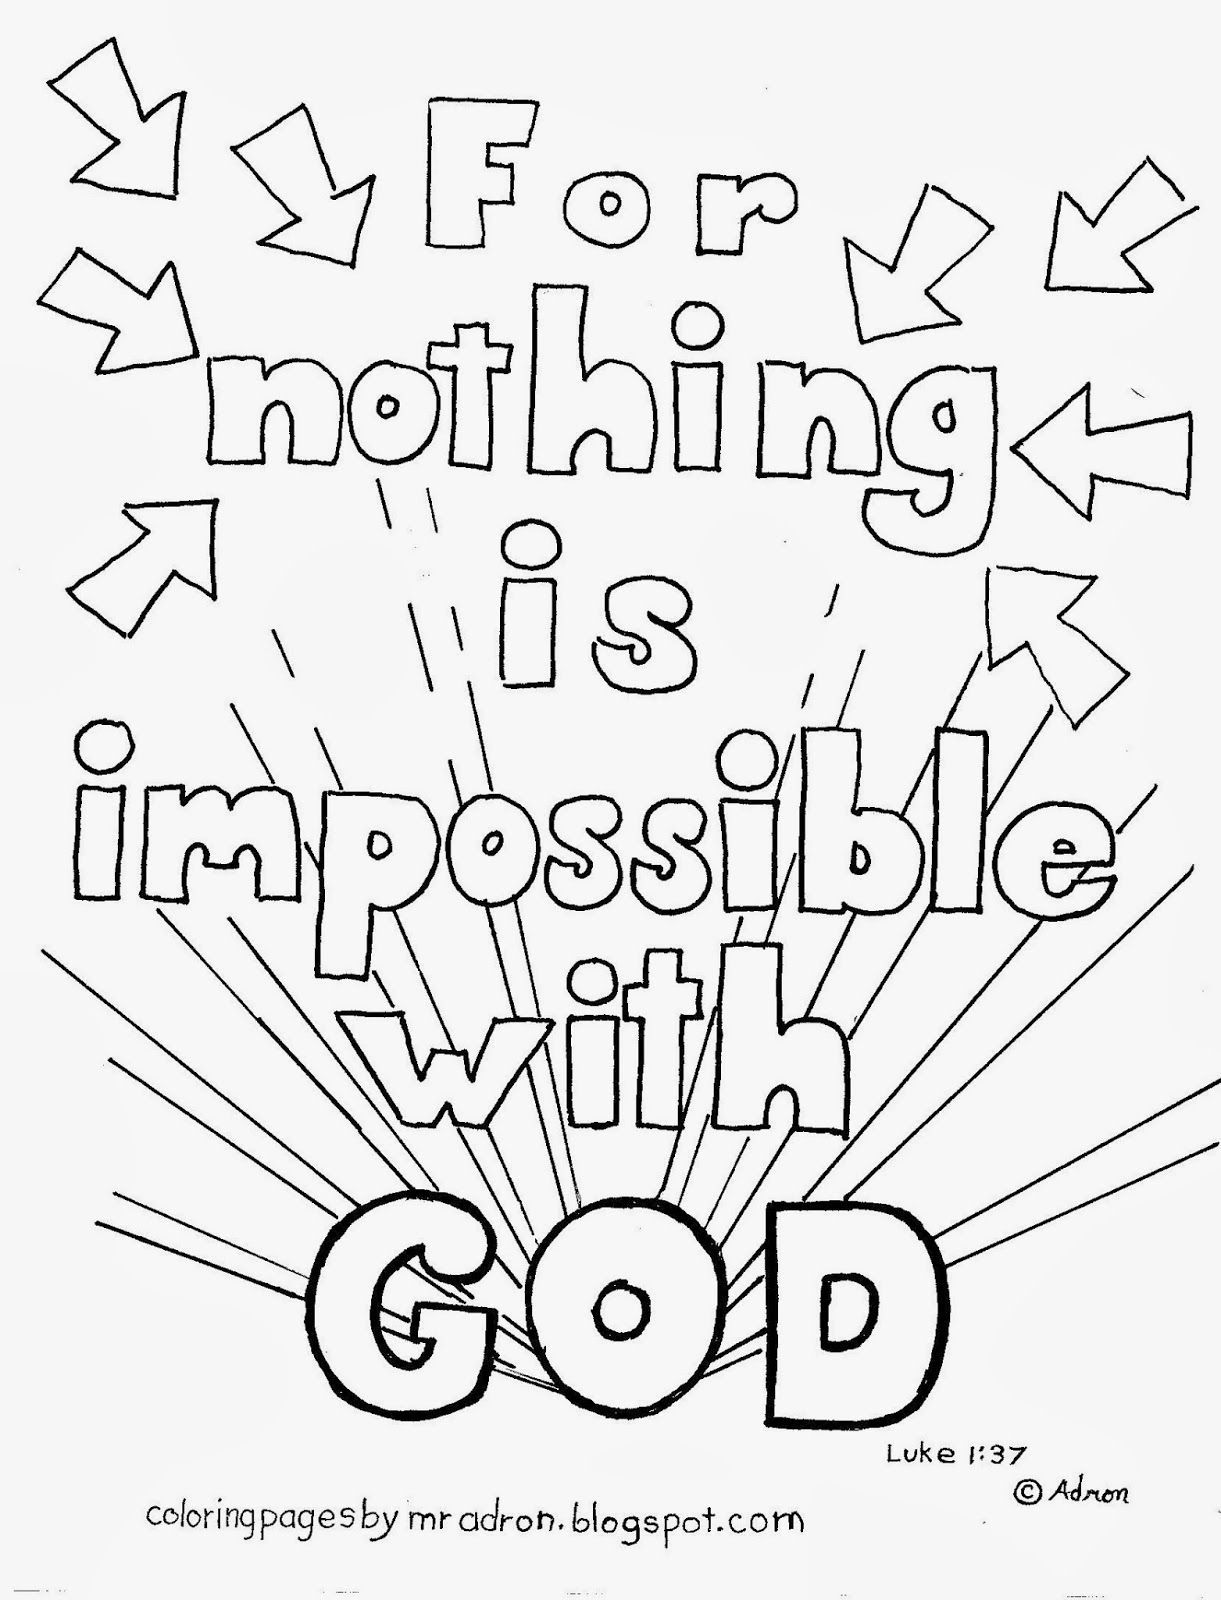 Coloring pages with bible verses - Bible Verses Coloring Pages